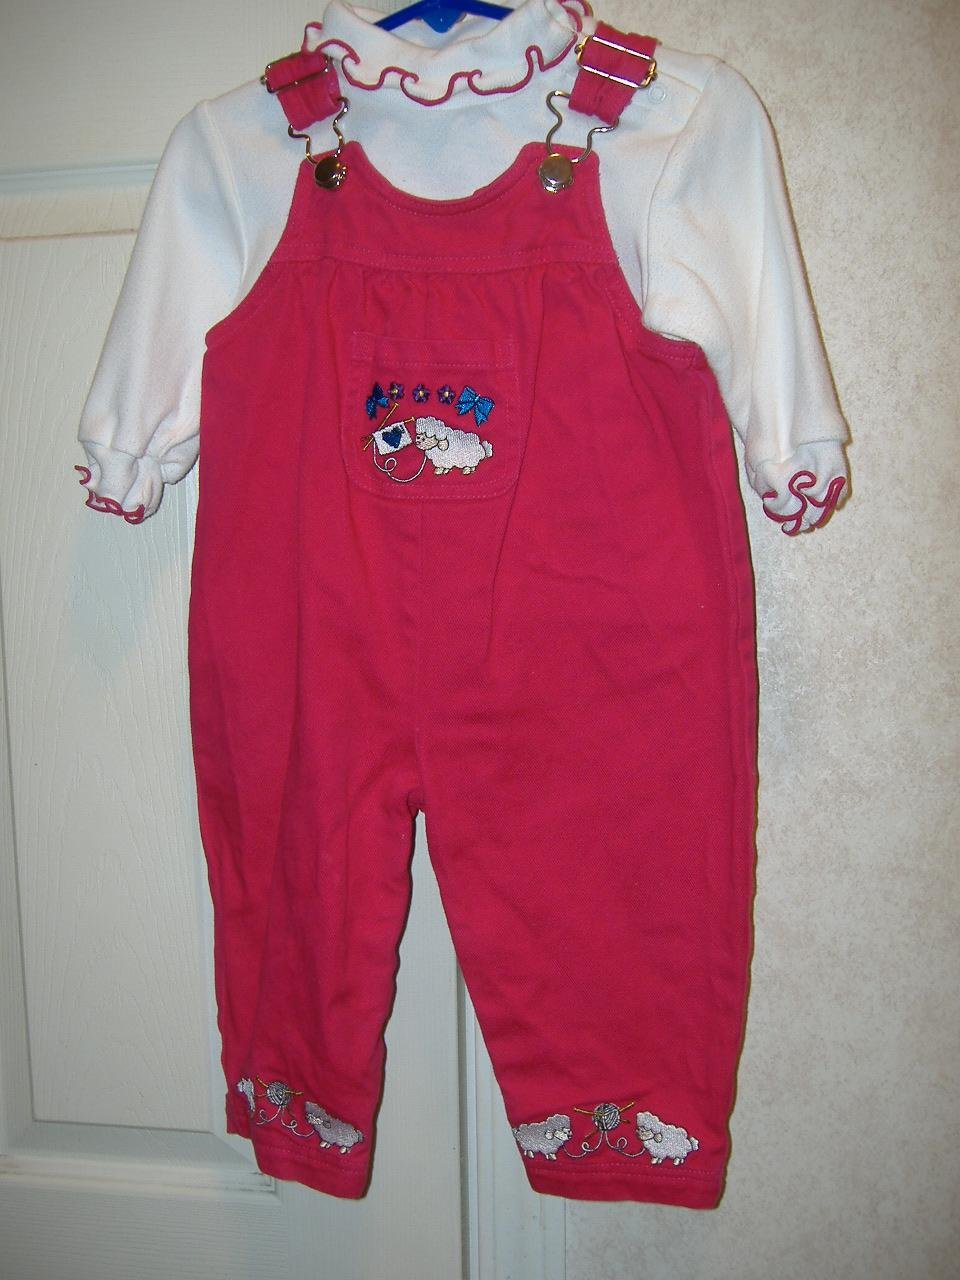 2 Piece Infant Girl Outfit By Samara     Size 18 Months